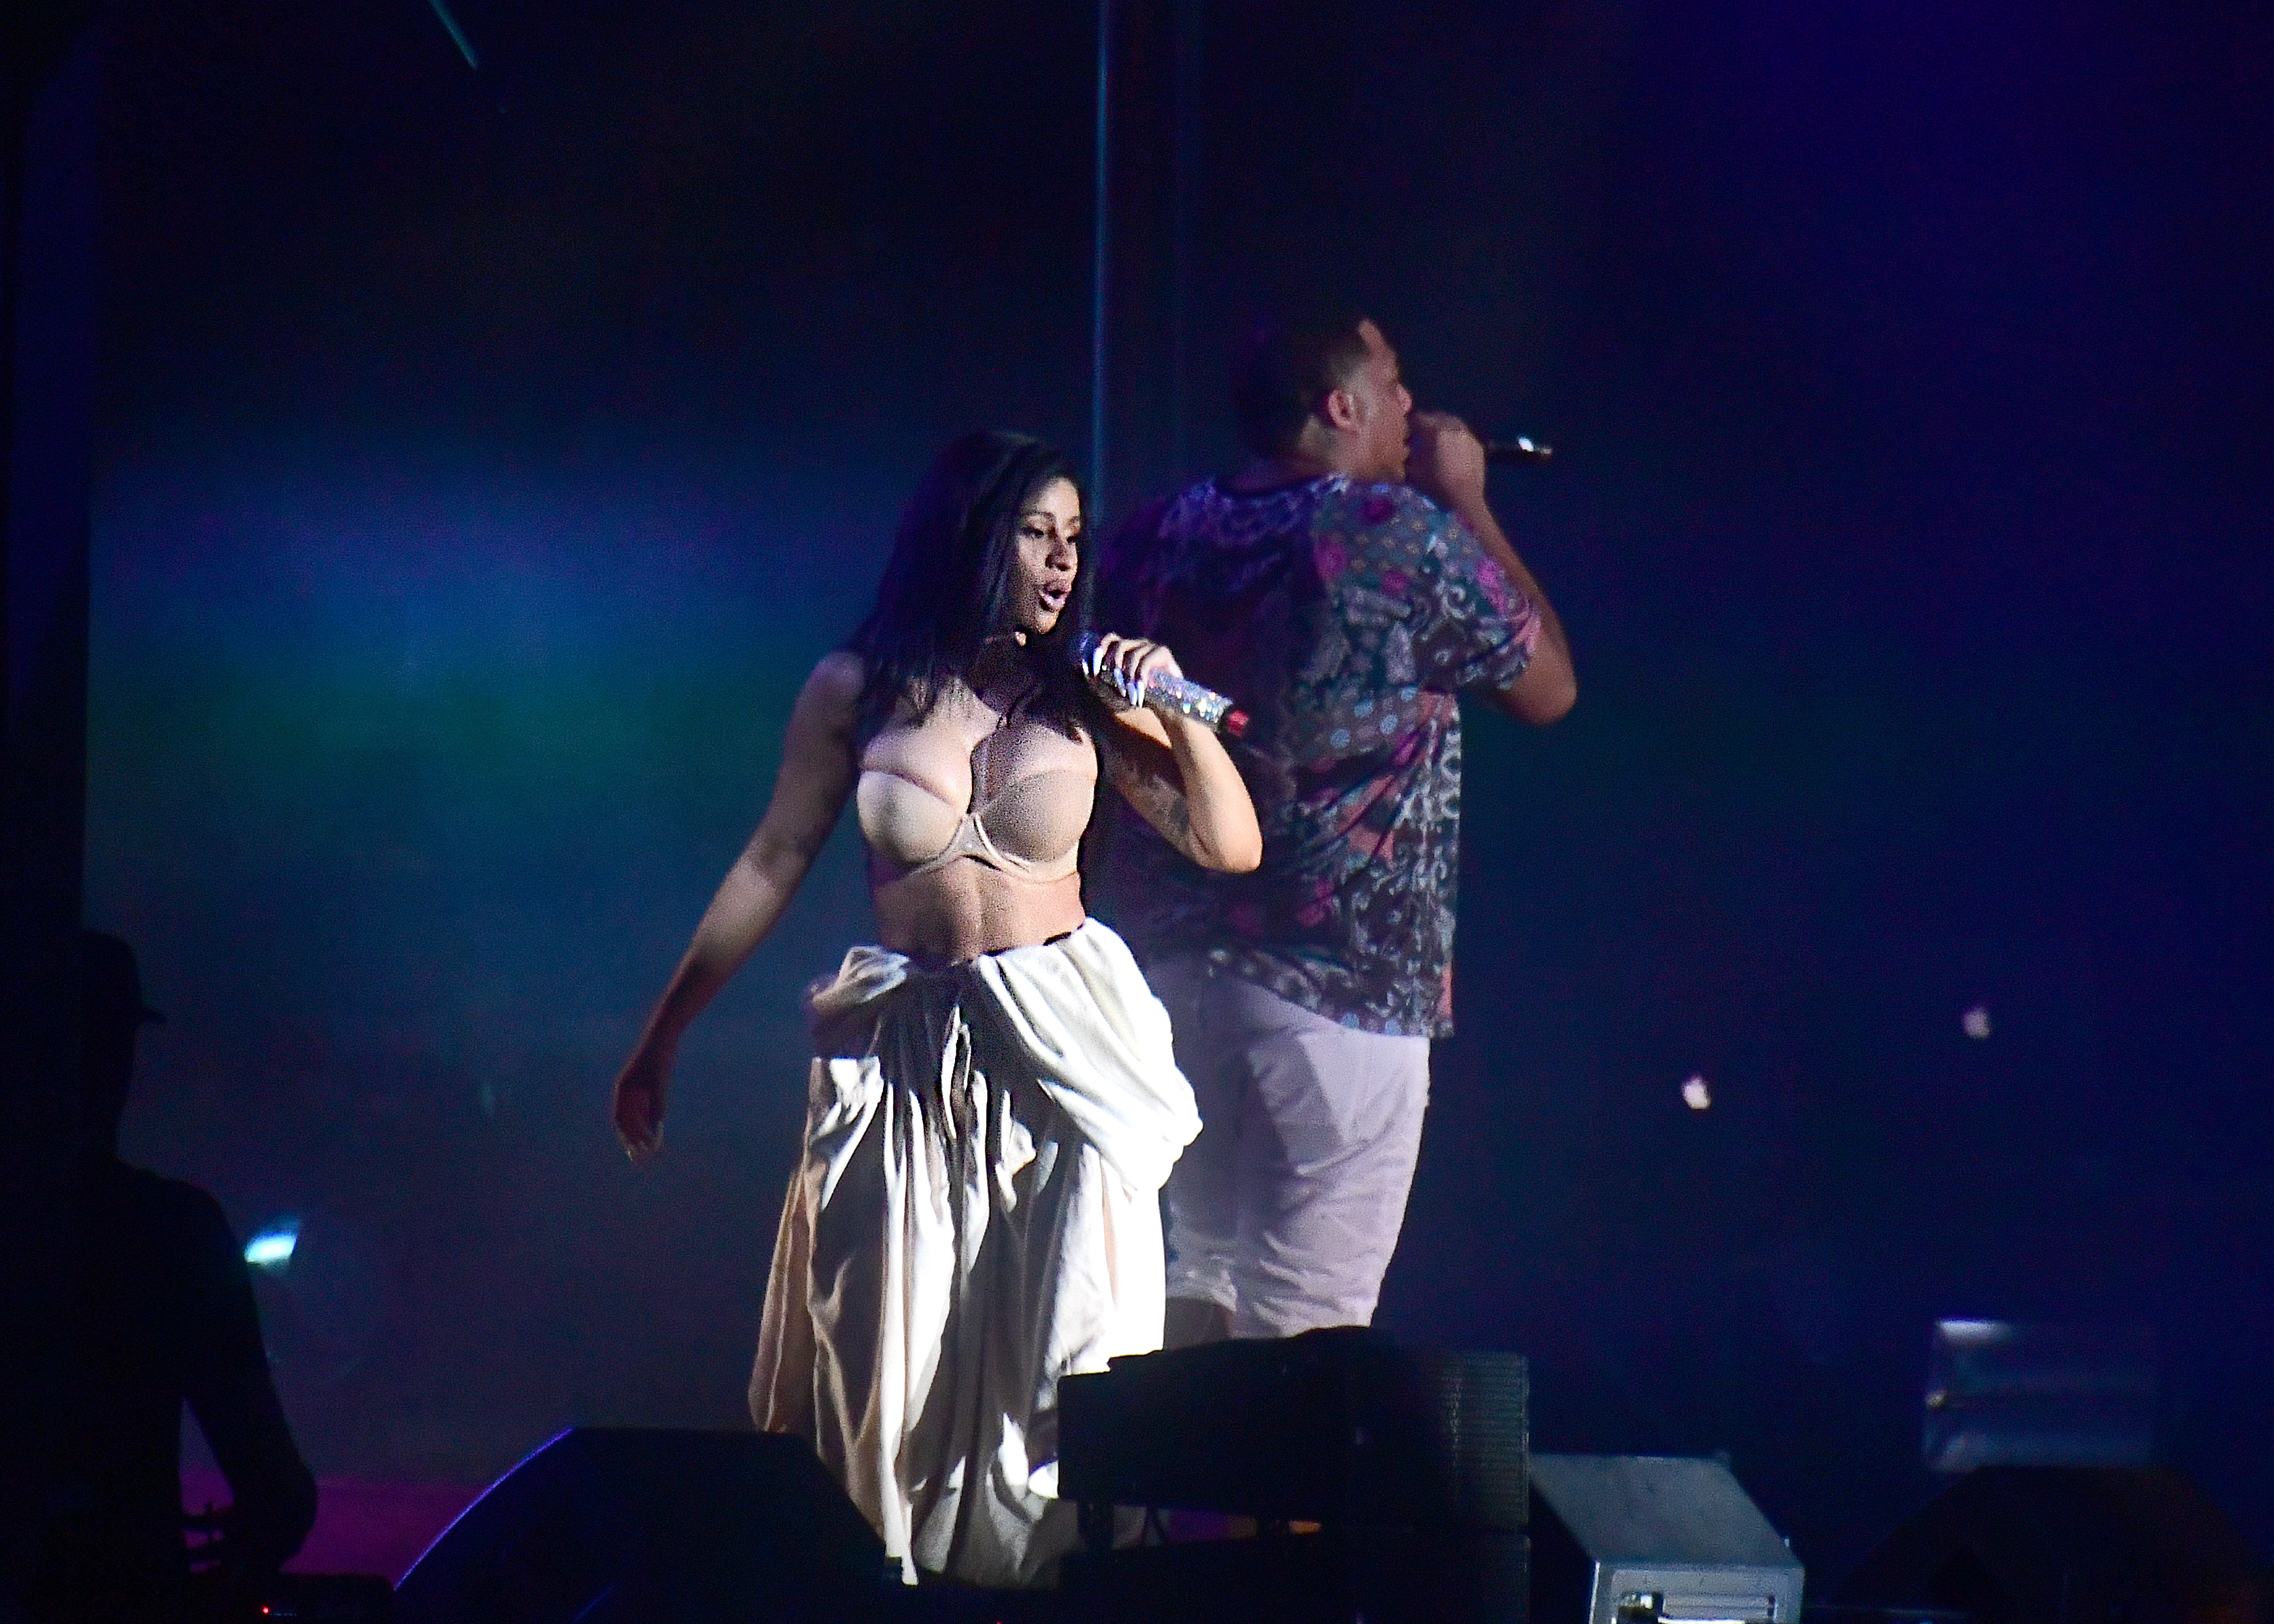 Cardi B wearing a bathrobe at Bonnaroo 2019.